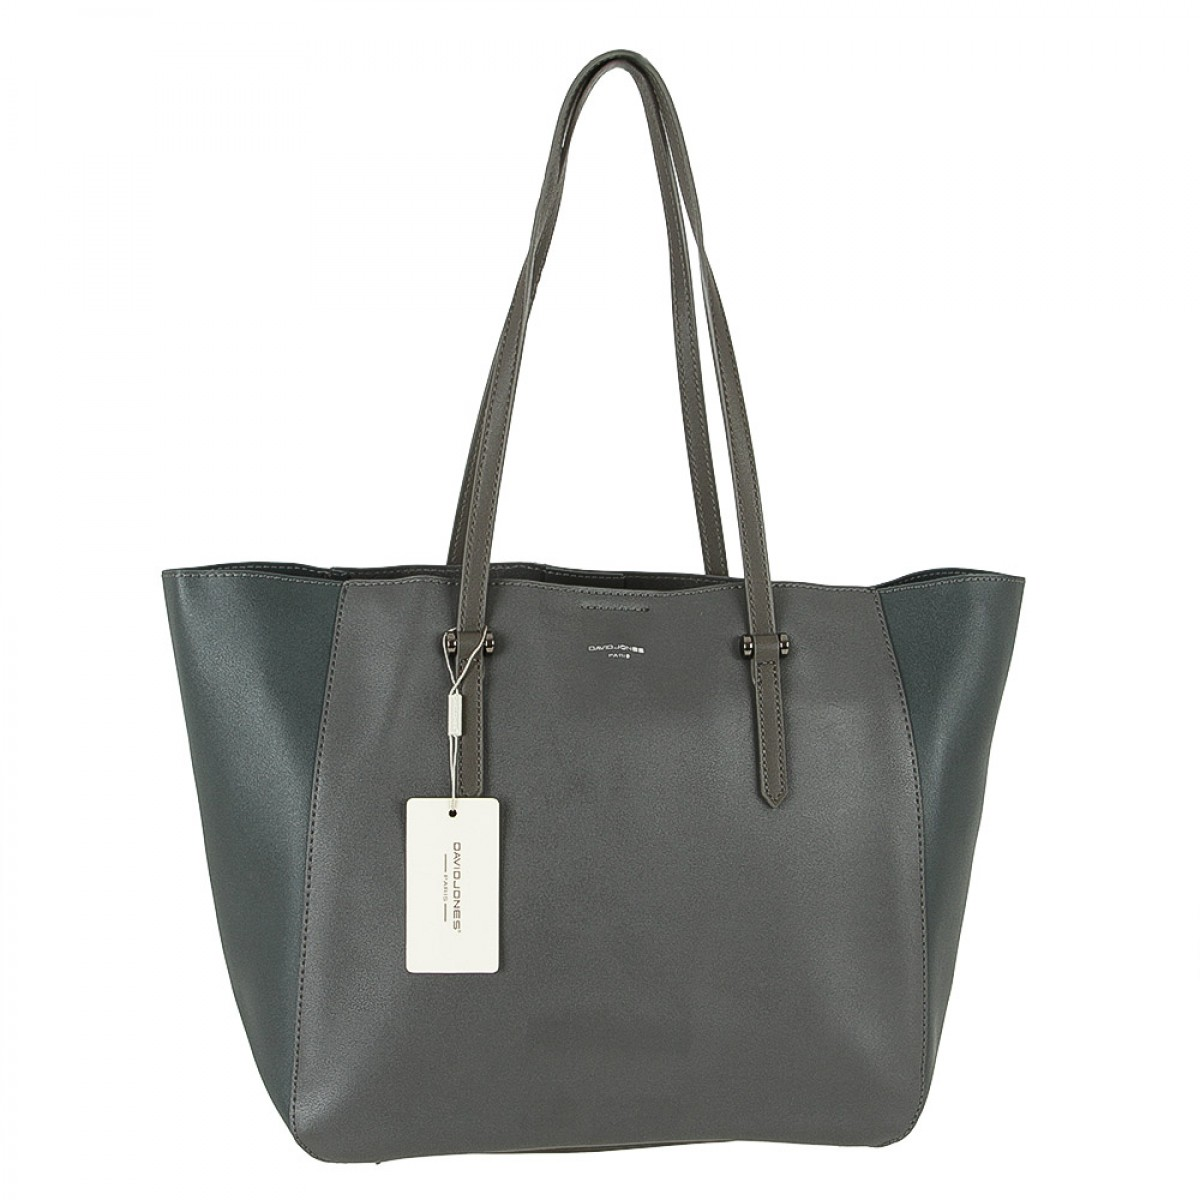 Жіноча сумка David Jones CM3941 D.GREY/PEACOOK BLUE